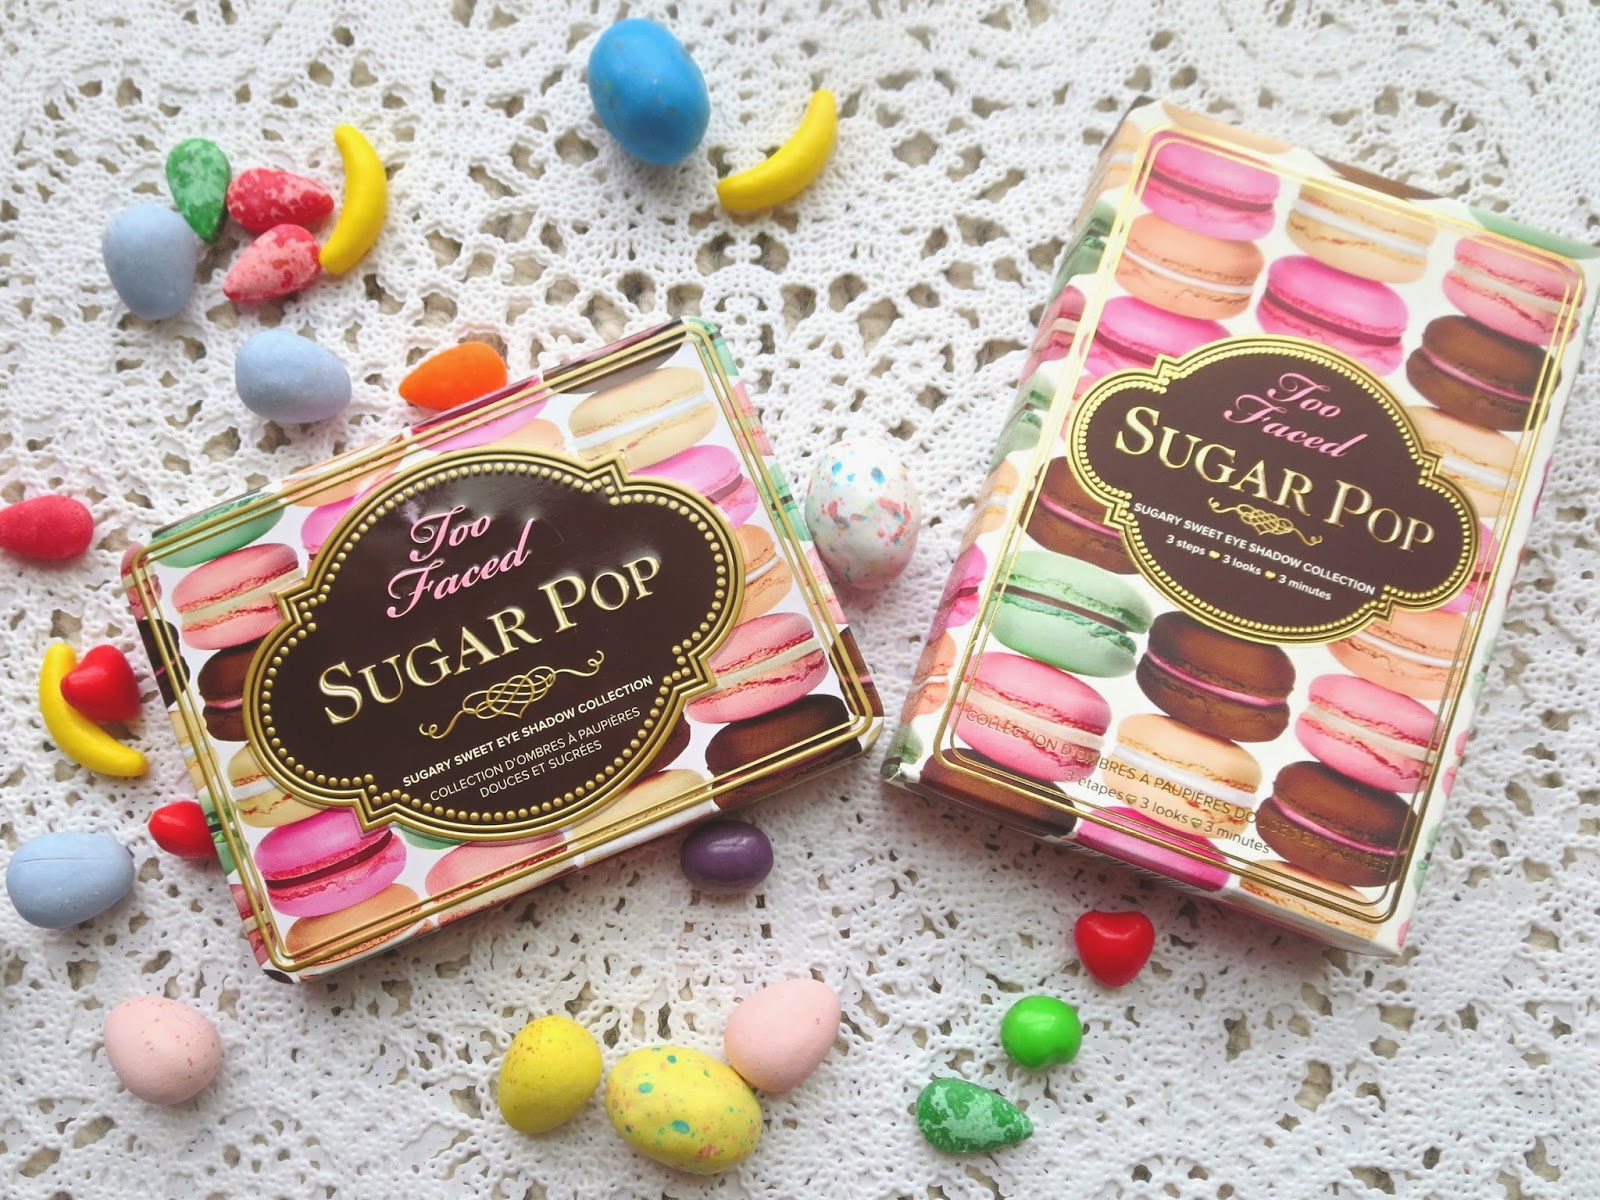 a picture of Too Faced Sugar Pop palette